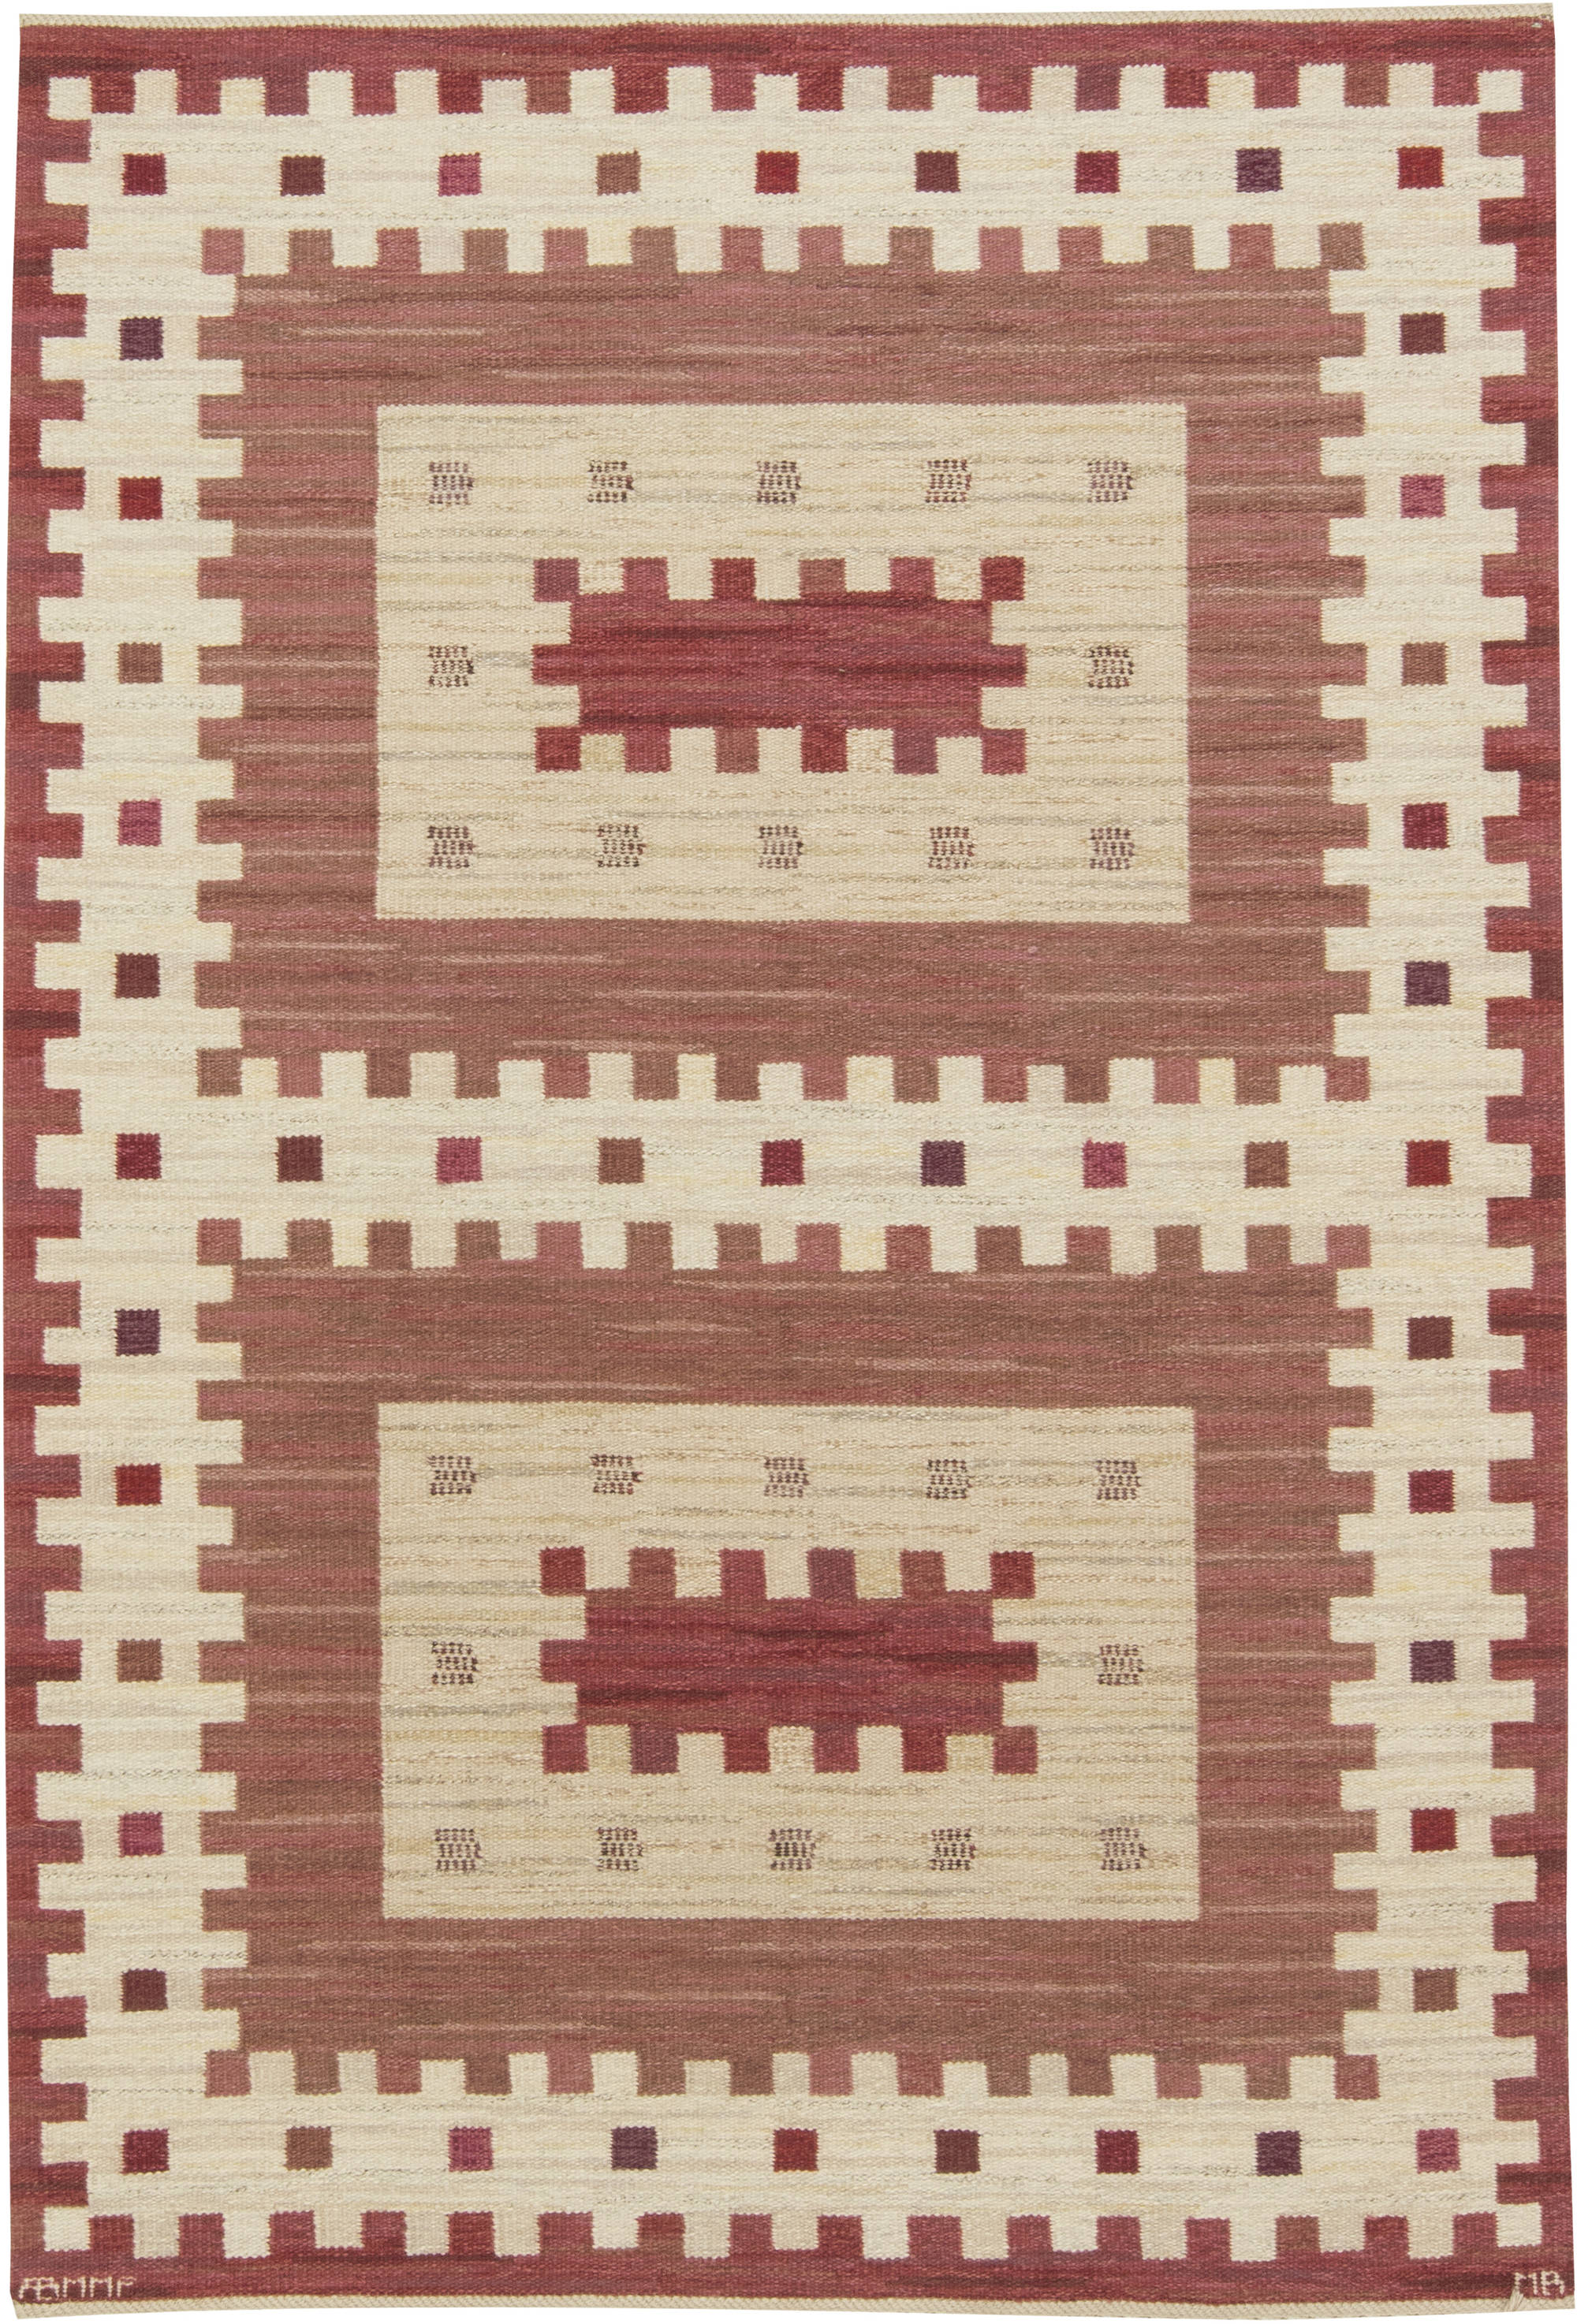 Vintage Rostaggen Swedish Flat Weave Rug by  Marianne Richter BB6425